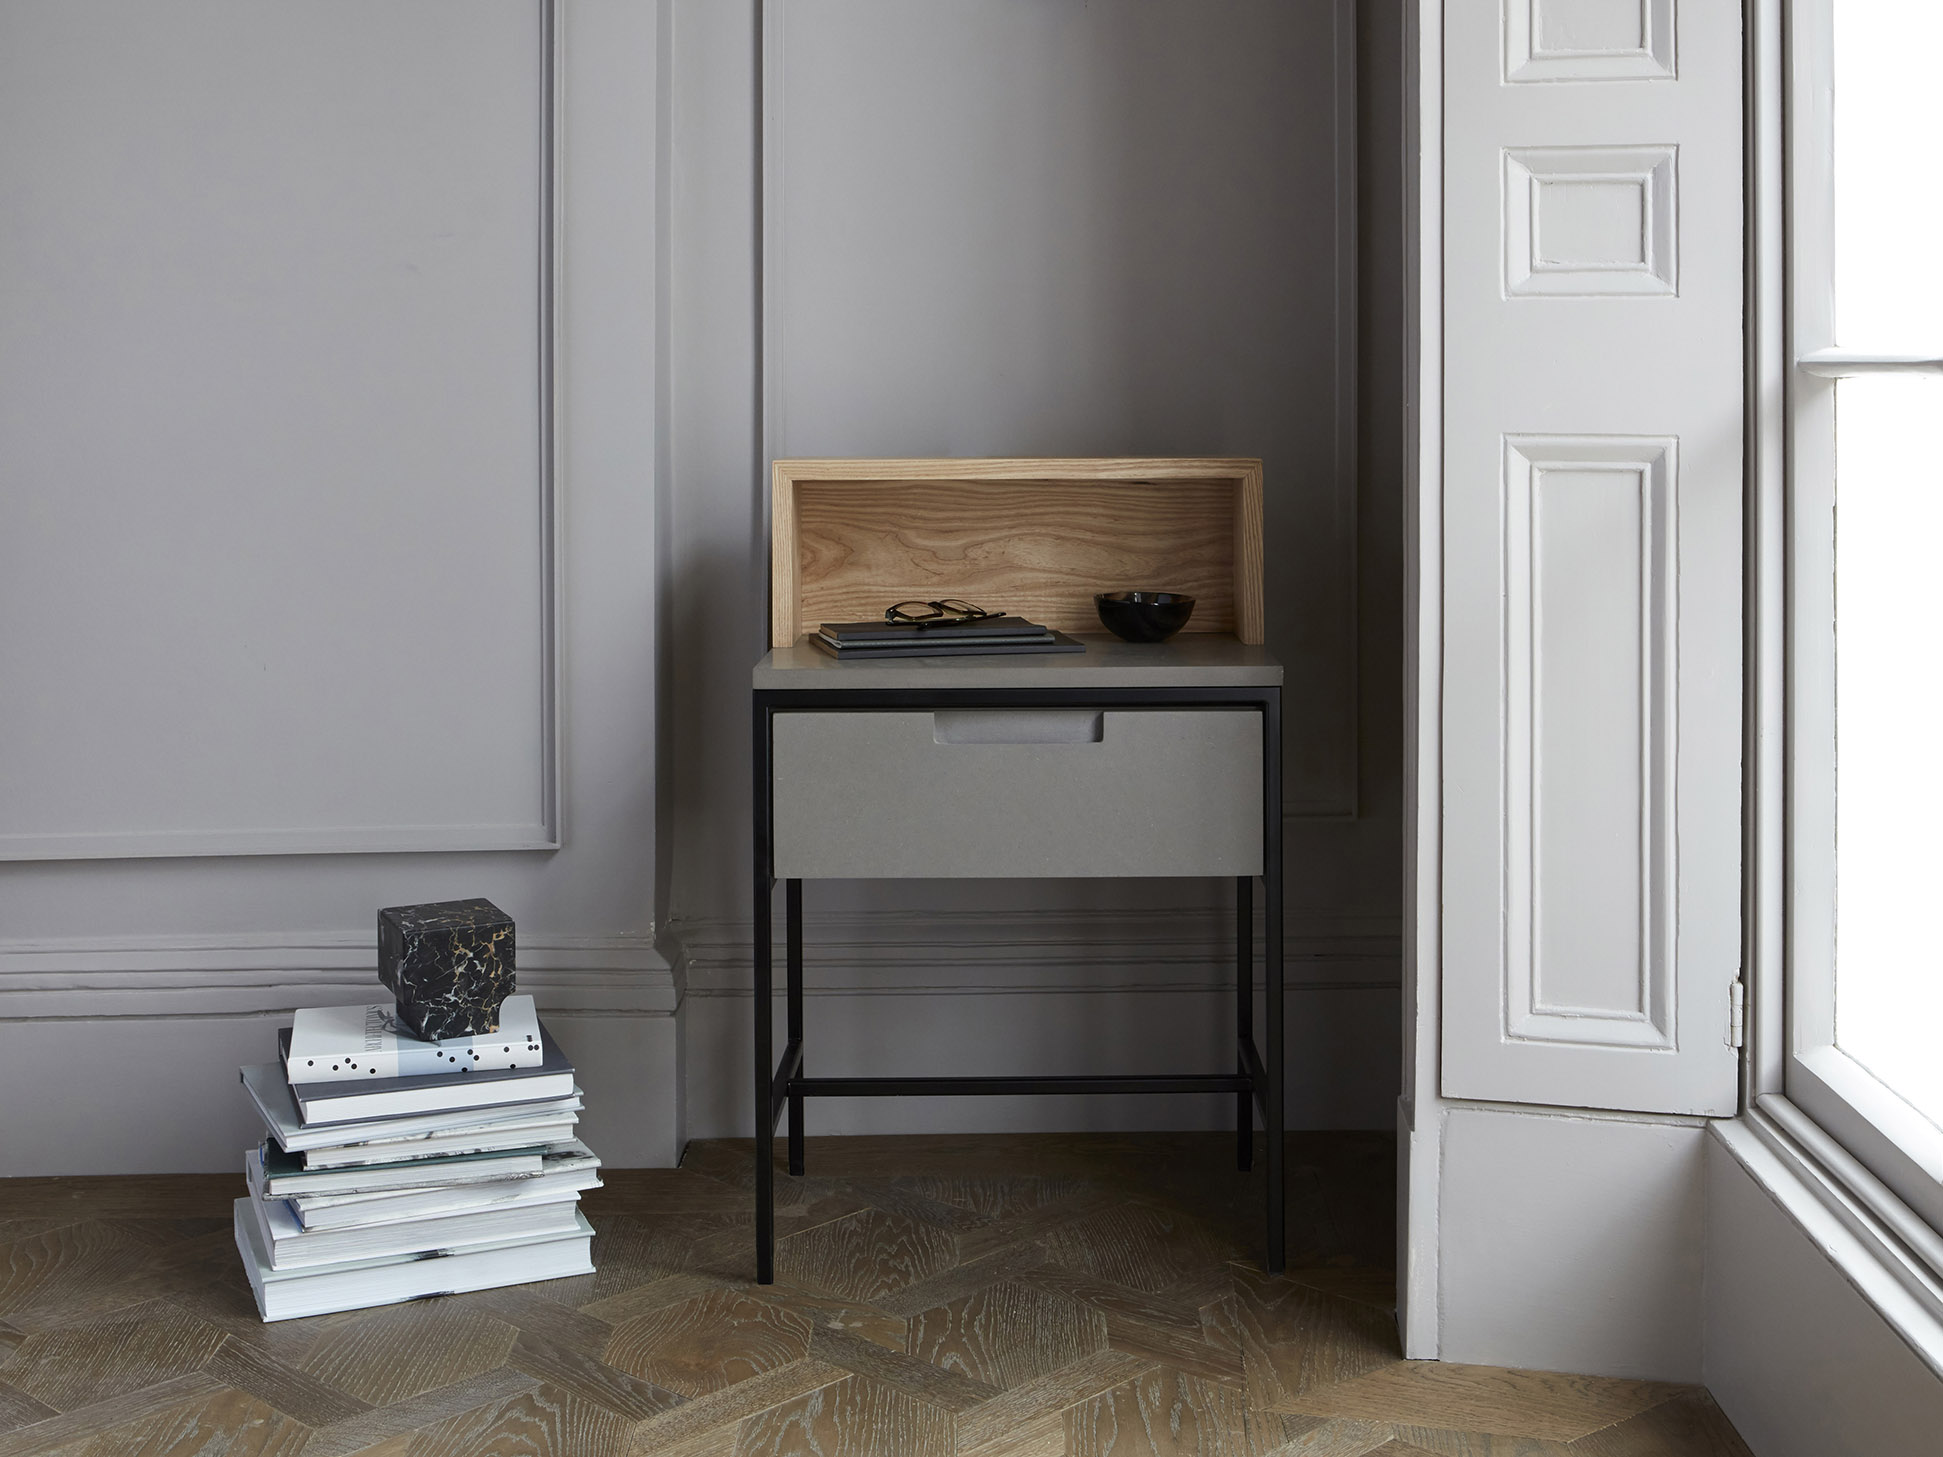 Refined Industrial Furniture By MannMade London + Giveaway!   Cate St Hill